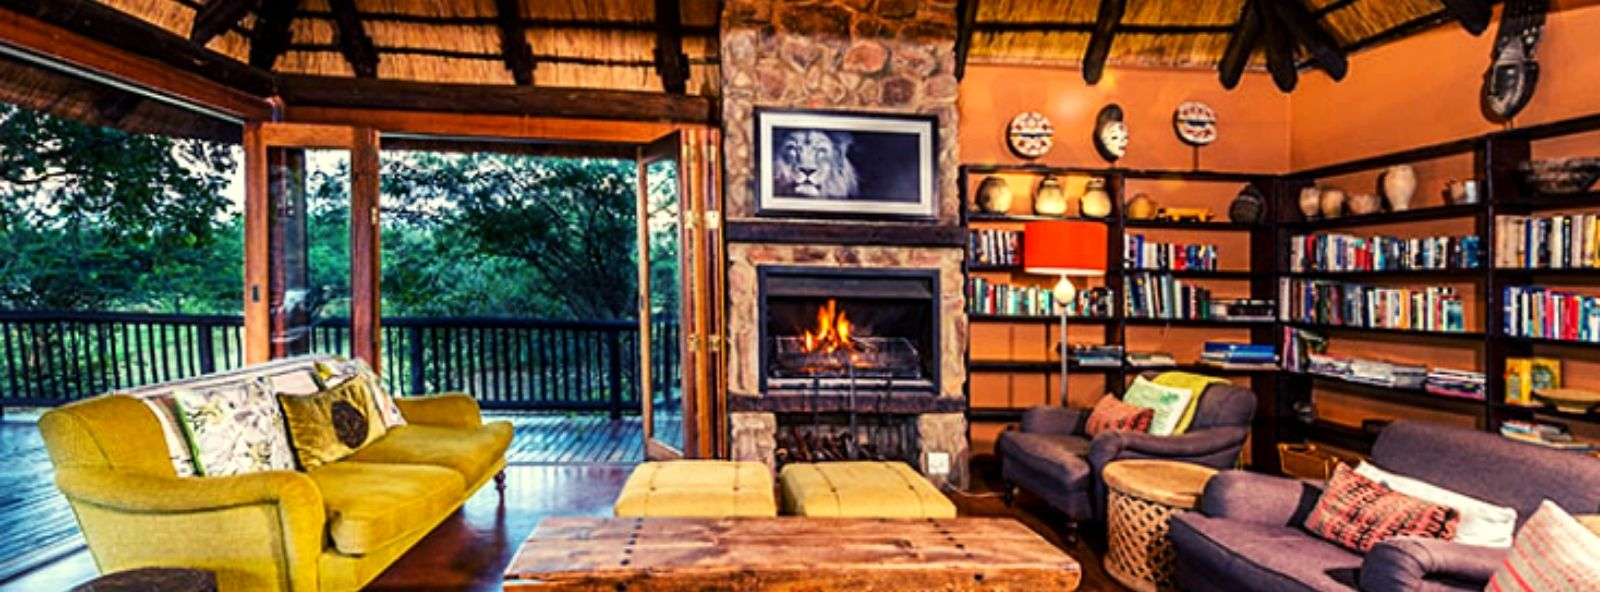 Getaway 8 Safari Accommodation Sitting Room with cosy sofas coffee table bookcase and log fire in background